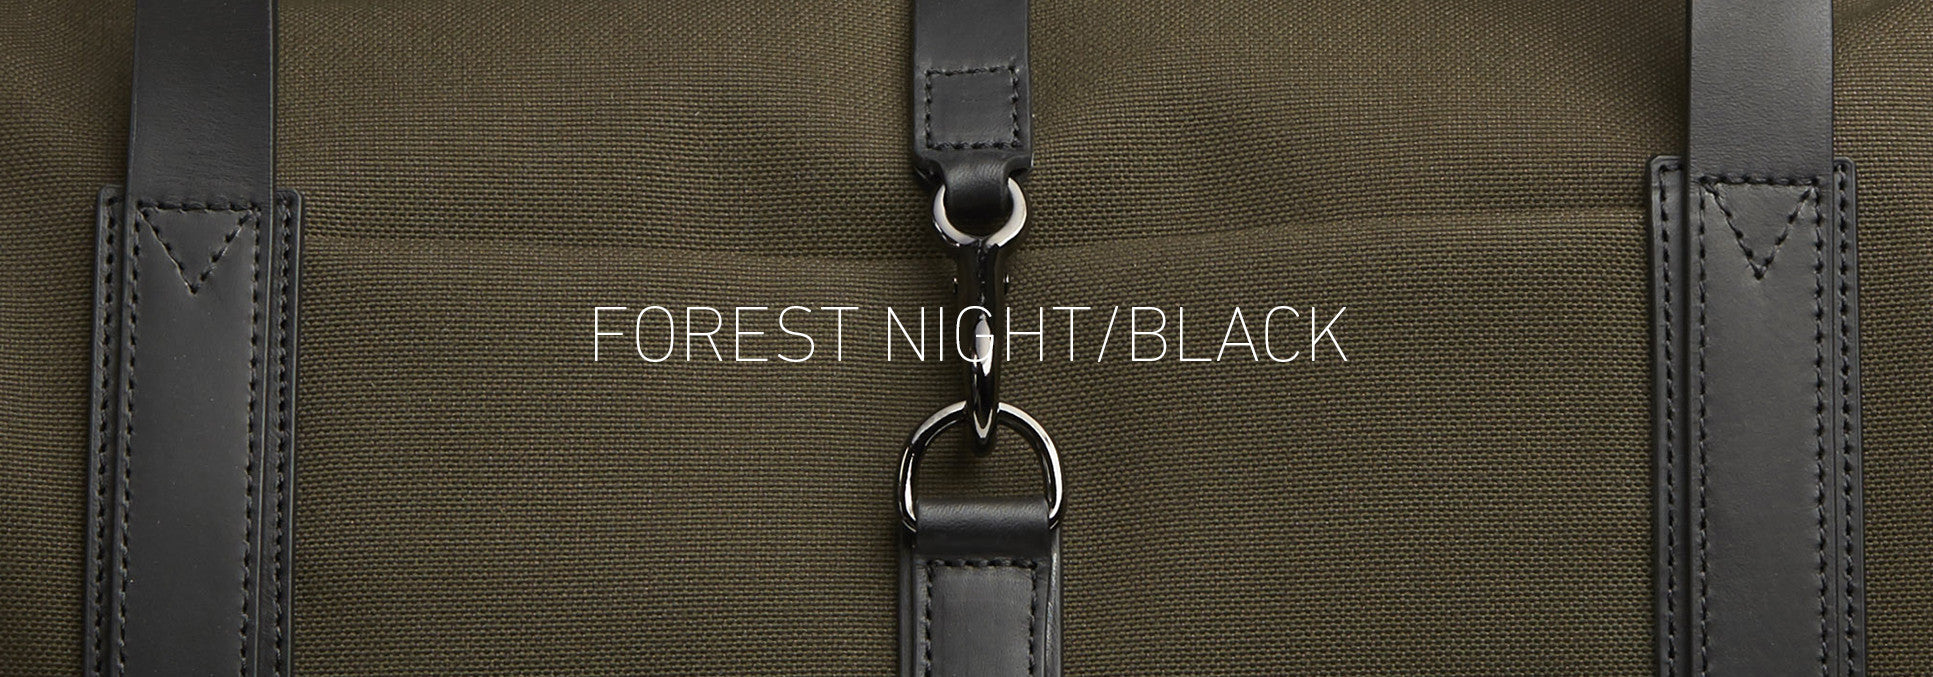 Forest Night/Black